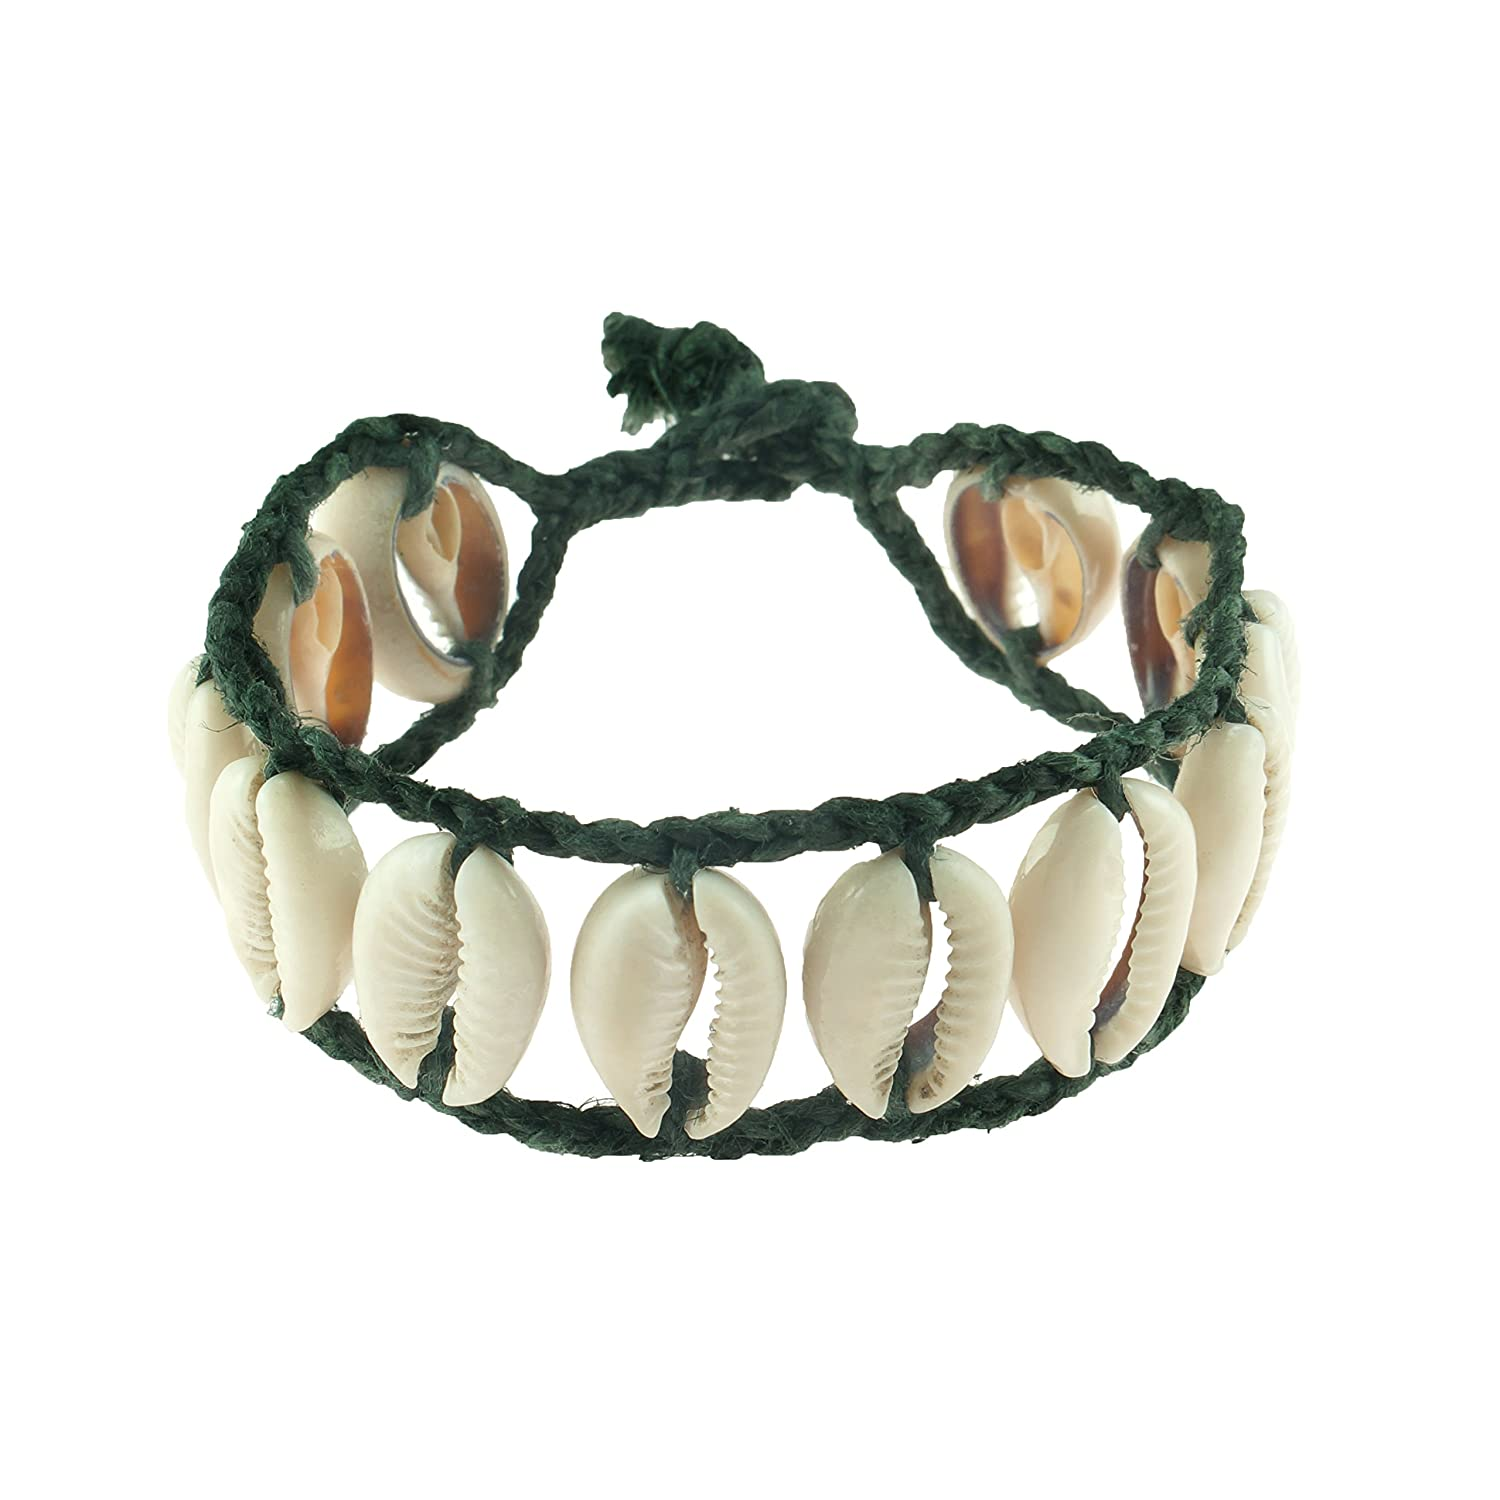 Cowrie Shells Ladder on Braided Black Waxed Cotton Cord Anklet Bracelet BlueRica BRHLCBK8